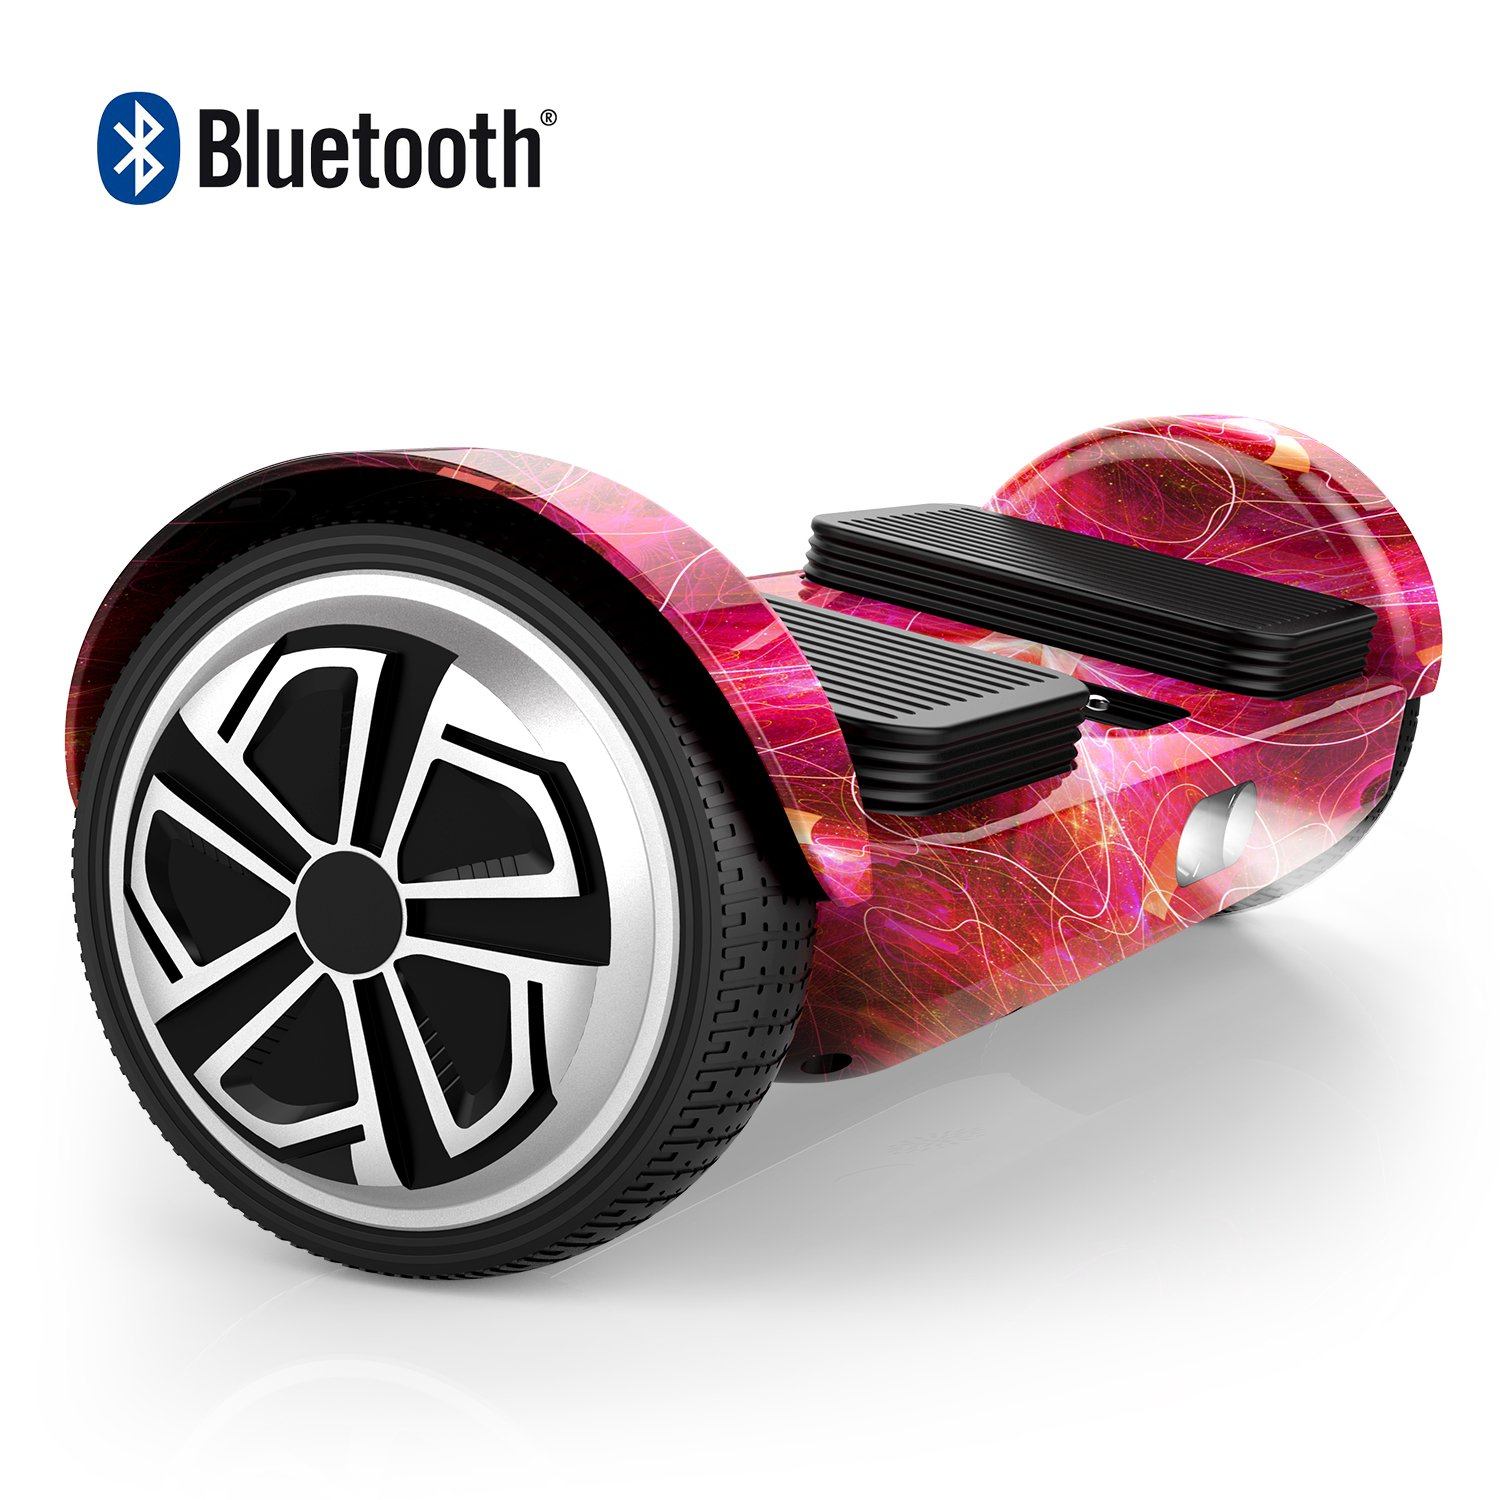 OXA Hoverboard - UL2272 Certified Self Balancing Scooter, 20 Lithium Batteries (144 Wh) Ensure 17 km Range on a Single Charge, 2 Modes for All Ages